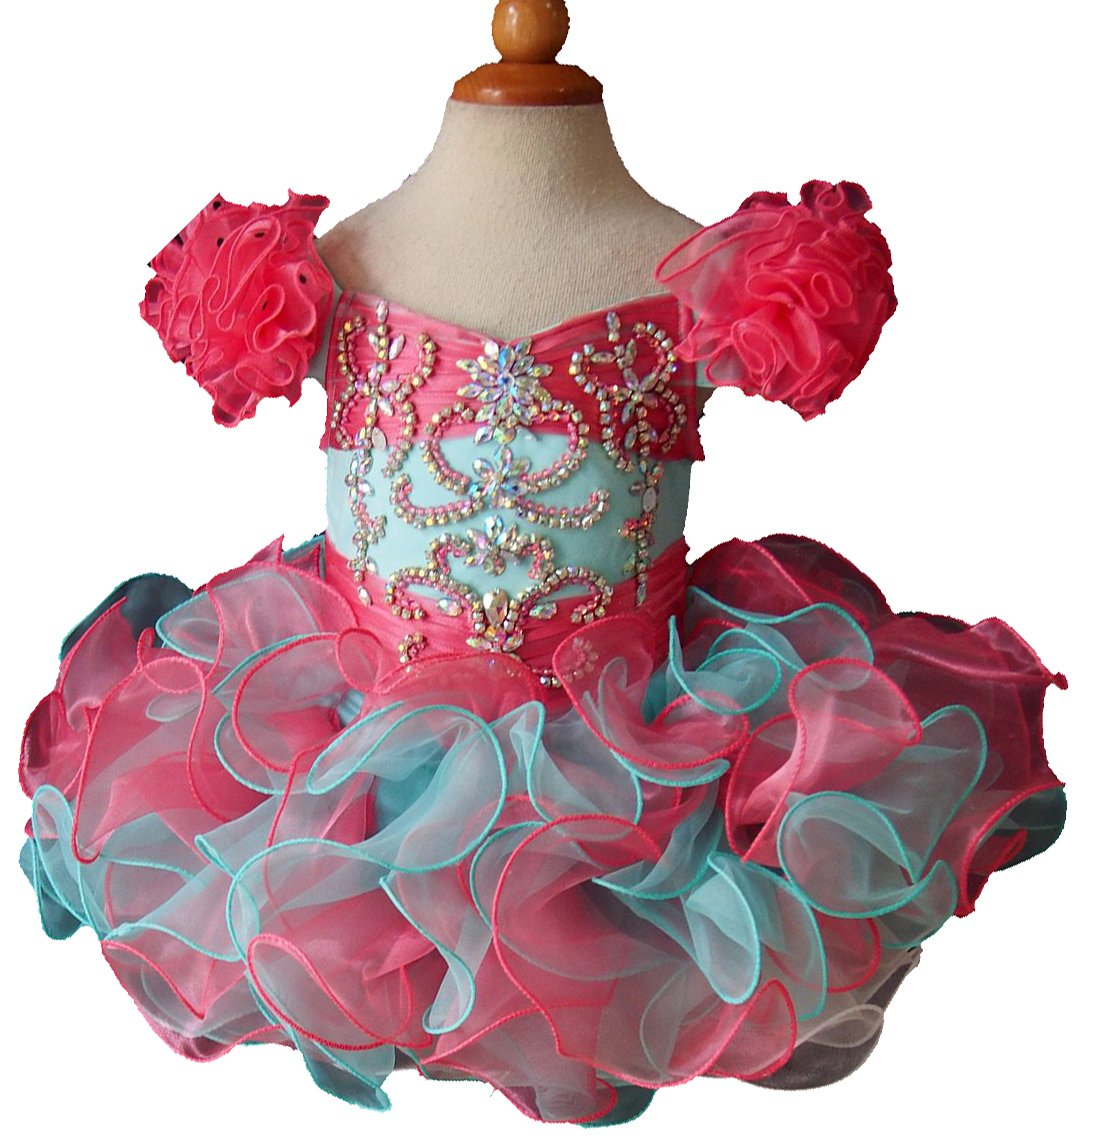 Jenniferwu Infant Toddler Baby Newborn Little Girl's Pageant Party Birthday Dress G080-3 Mint Size 12-18M